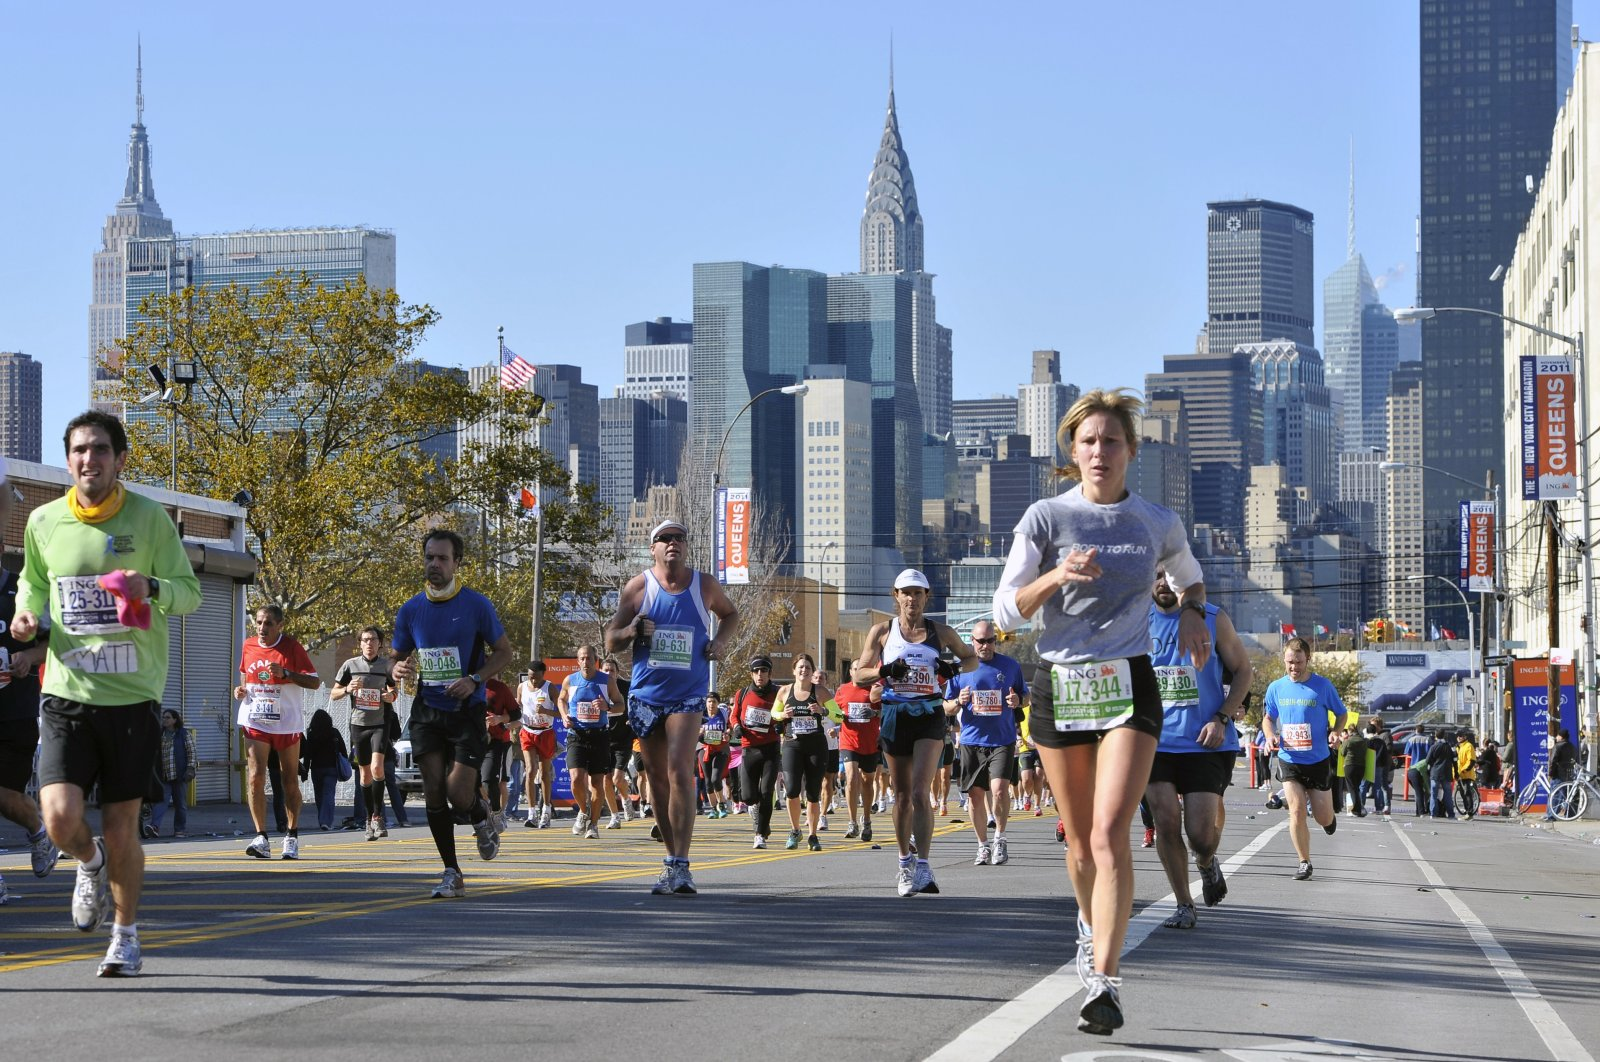 Runners make their way down 44th Drive in the Queens borough of New York during the New York City Marathon, Nov. 6, 2011. (AP Photo)